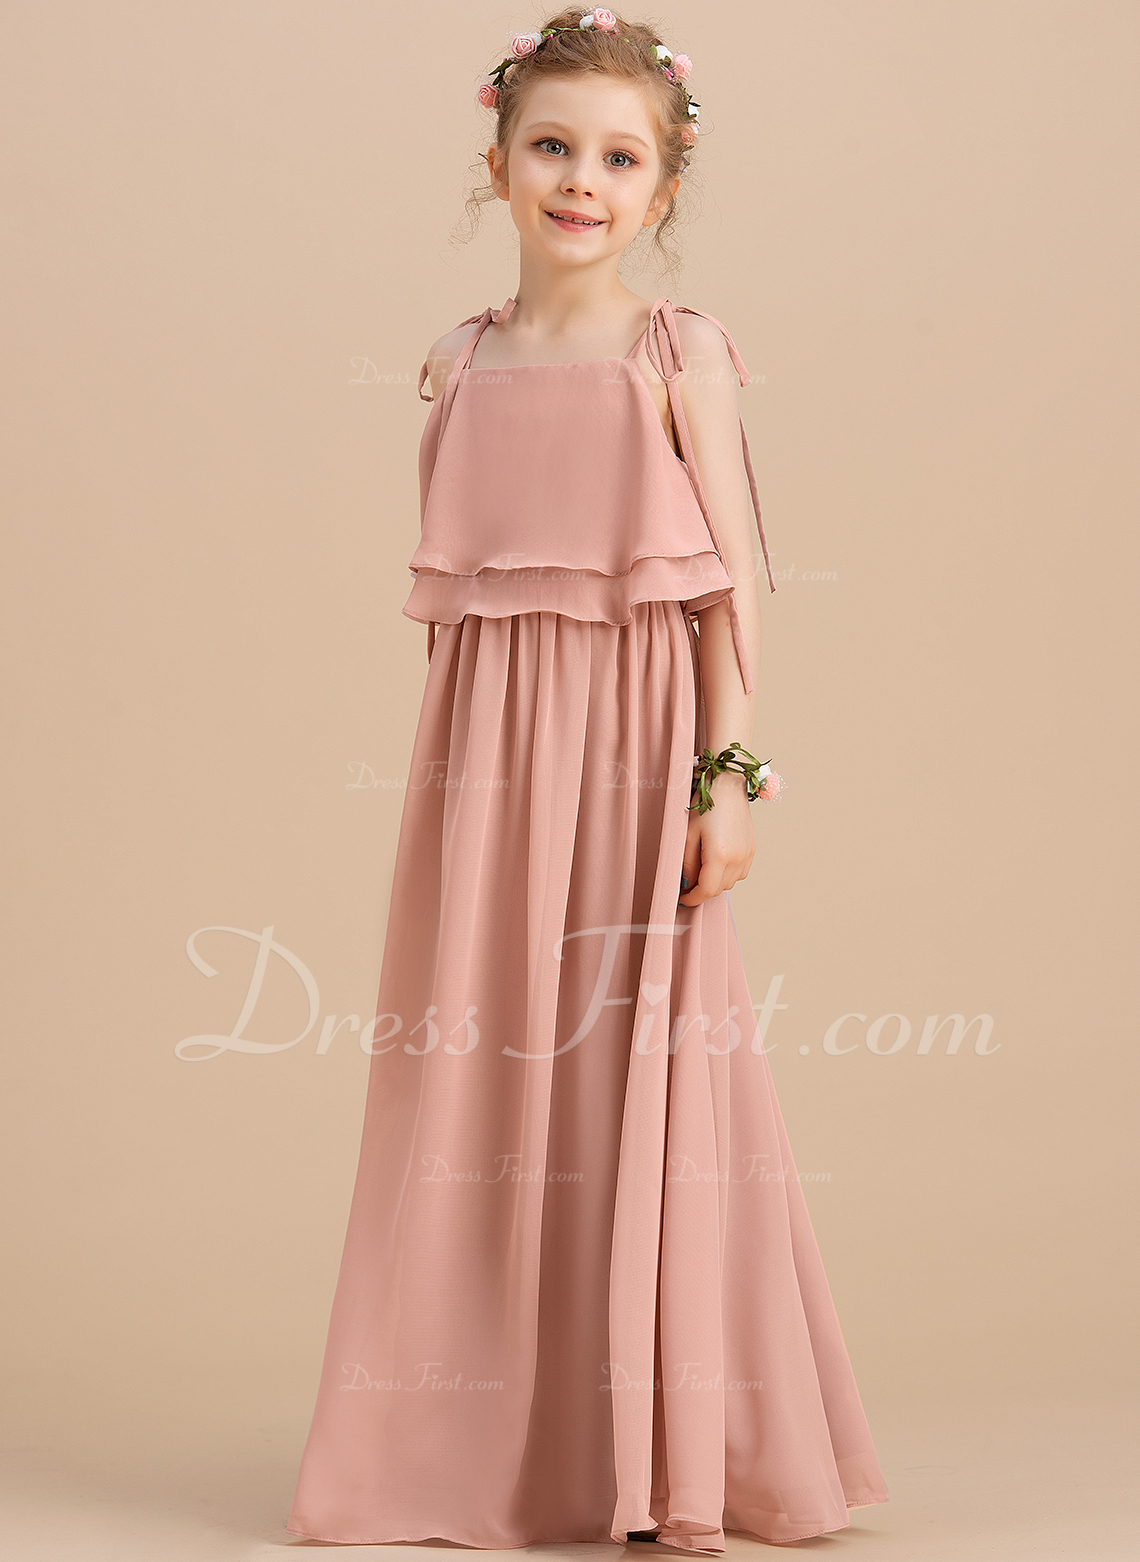 A-Line/Princess Floor-length Flower Girl Dress - Chiffon Sleeveless Square Neckline/Straps With Ruffles